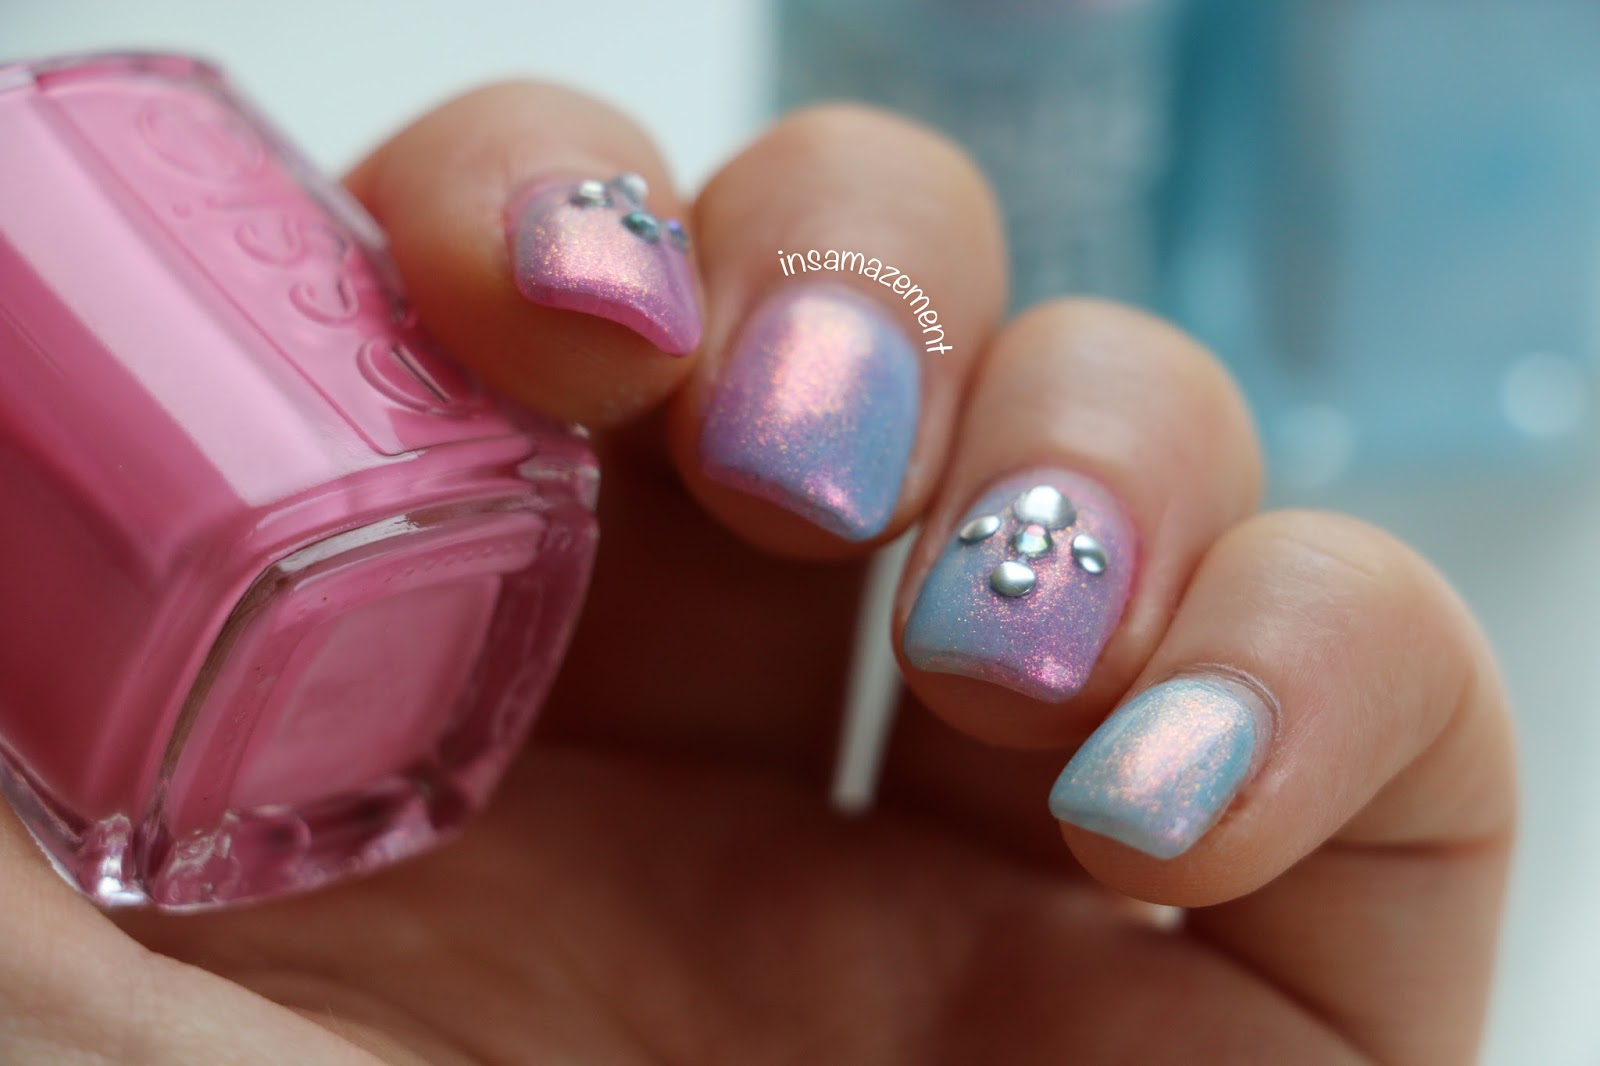 In Samazement Mermaid Holographic 3d Nail Art